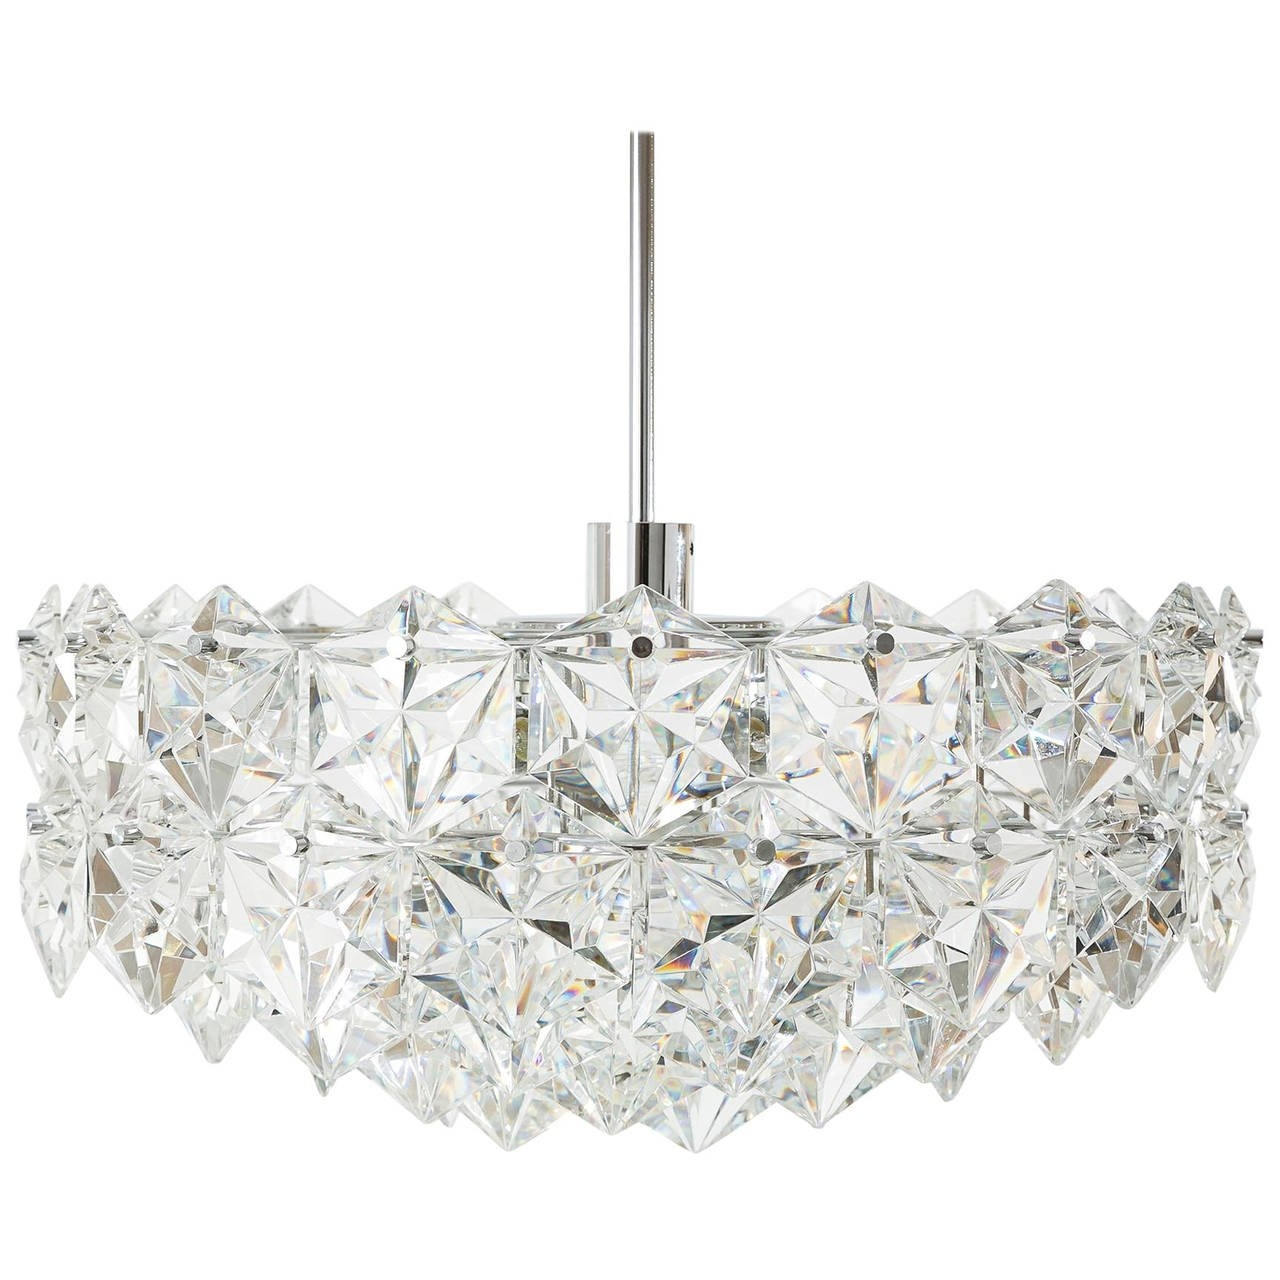 19 3 Tier Kinkeldey Crystal Chandelier Flush Mount Light Chrome Pertaining To 3 Tier Crystal Chandelier (Image 2 of 15)